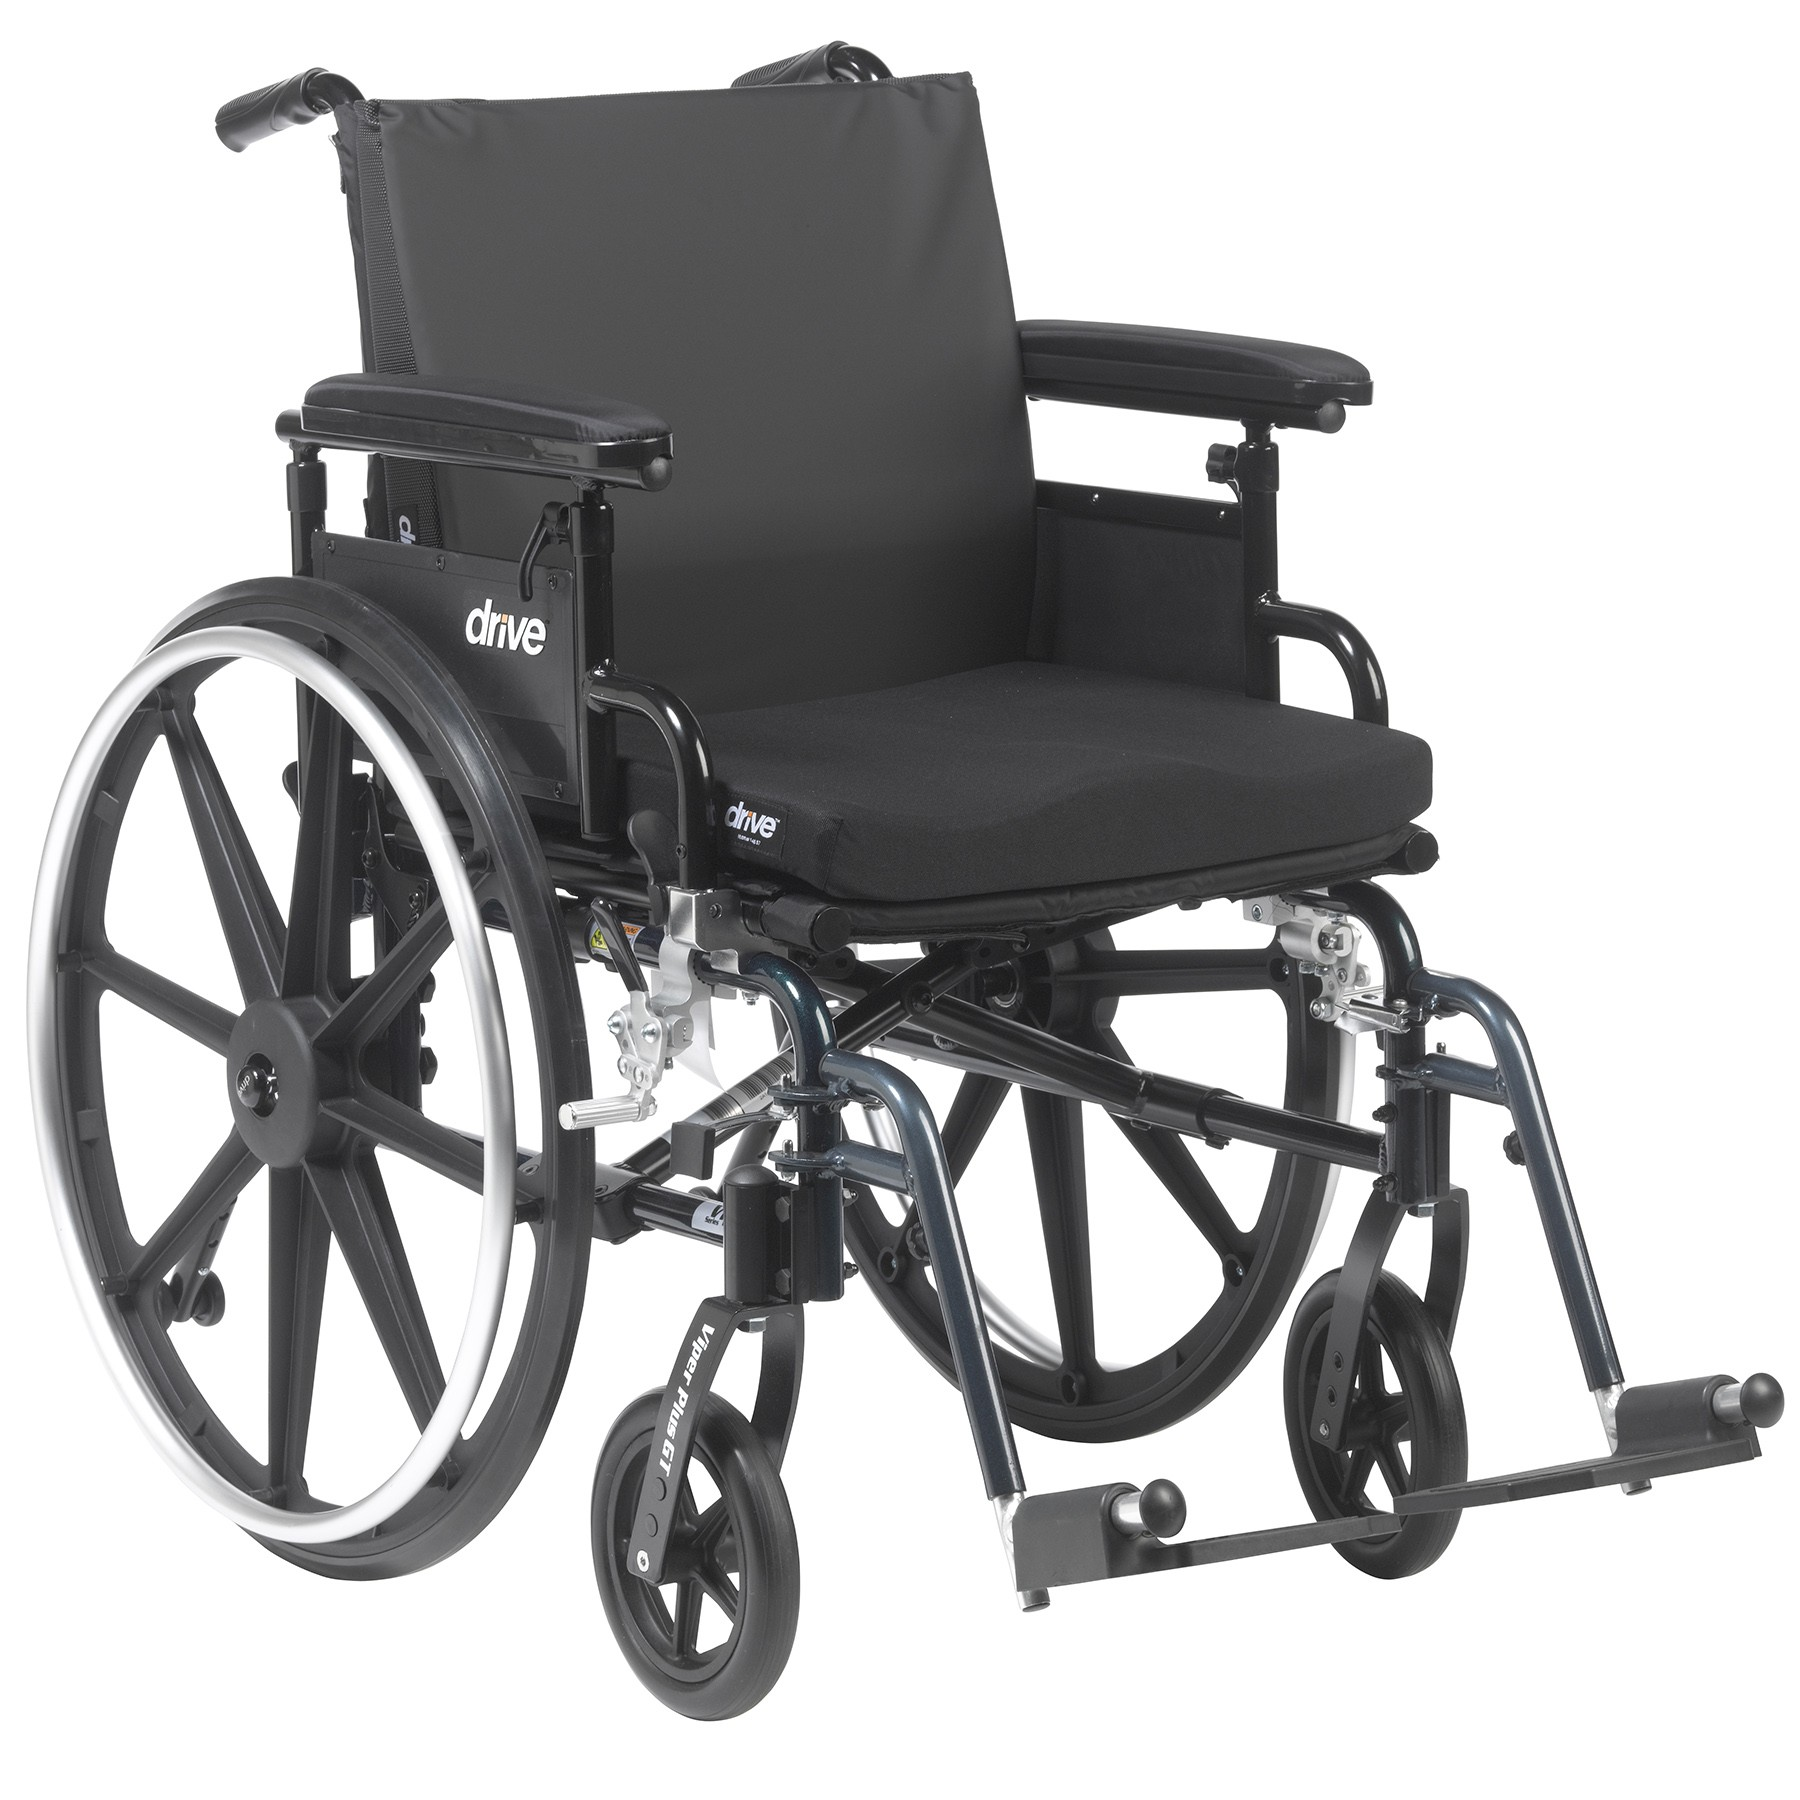 Wheel Chair Cushion Drive Medical General Use Wheelchair Cushion Kits